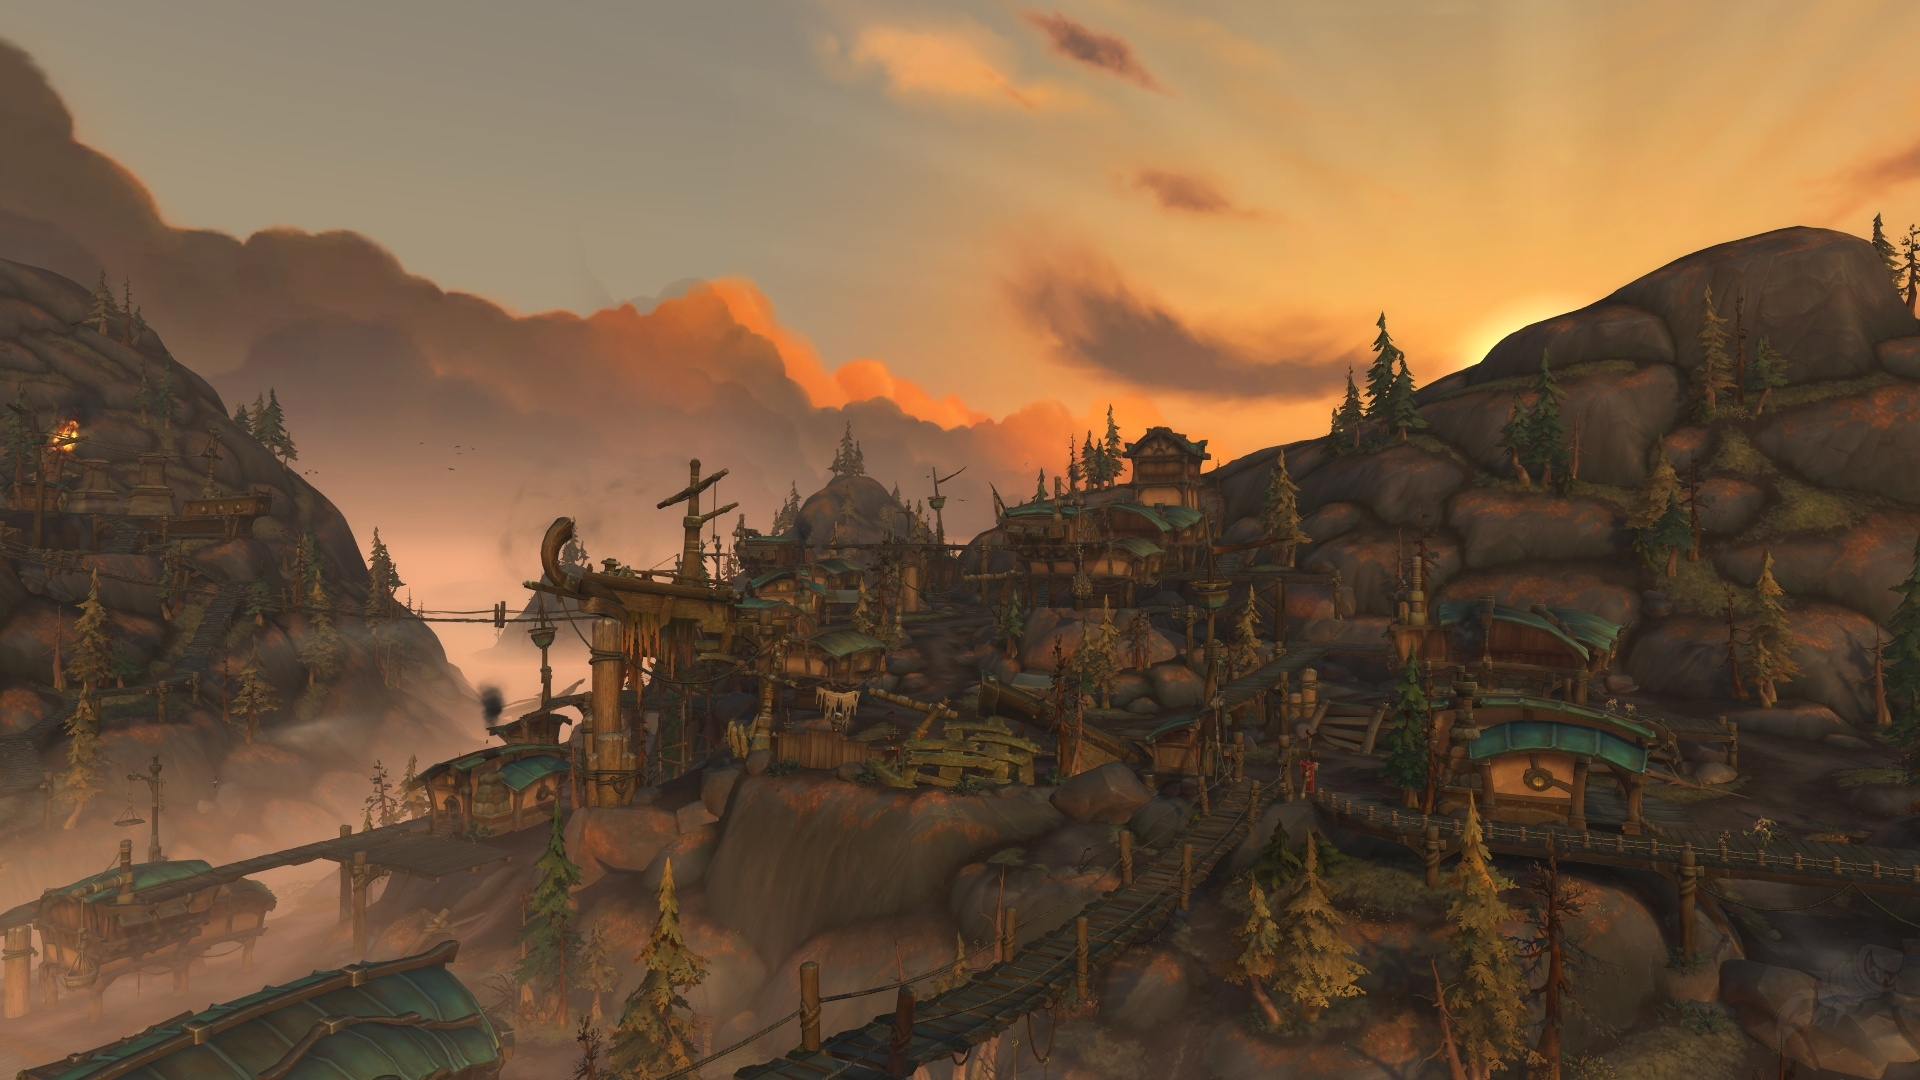 Of Zone Zone Of Warcraft Freehold Freehold World Warcraft Zone World Freehold World wnO8P0k